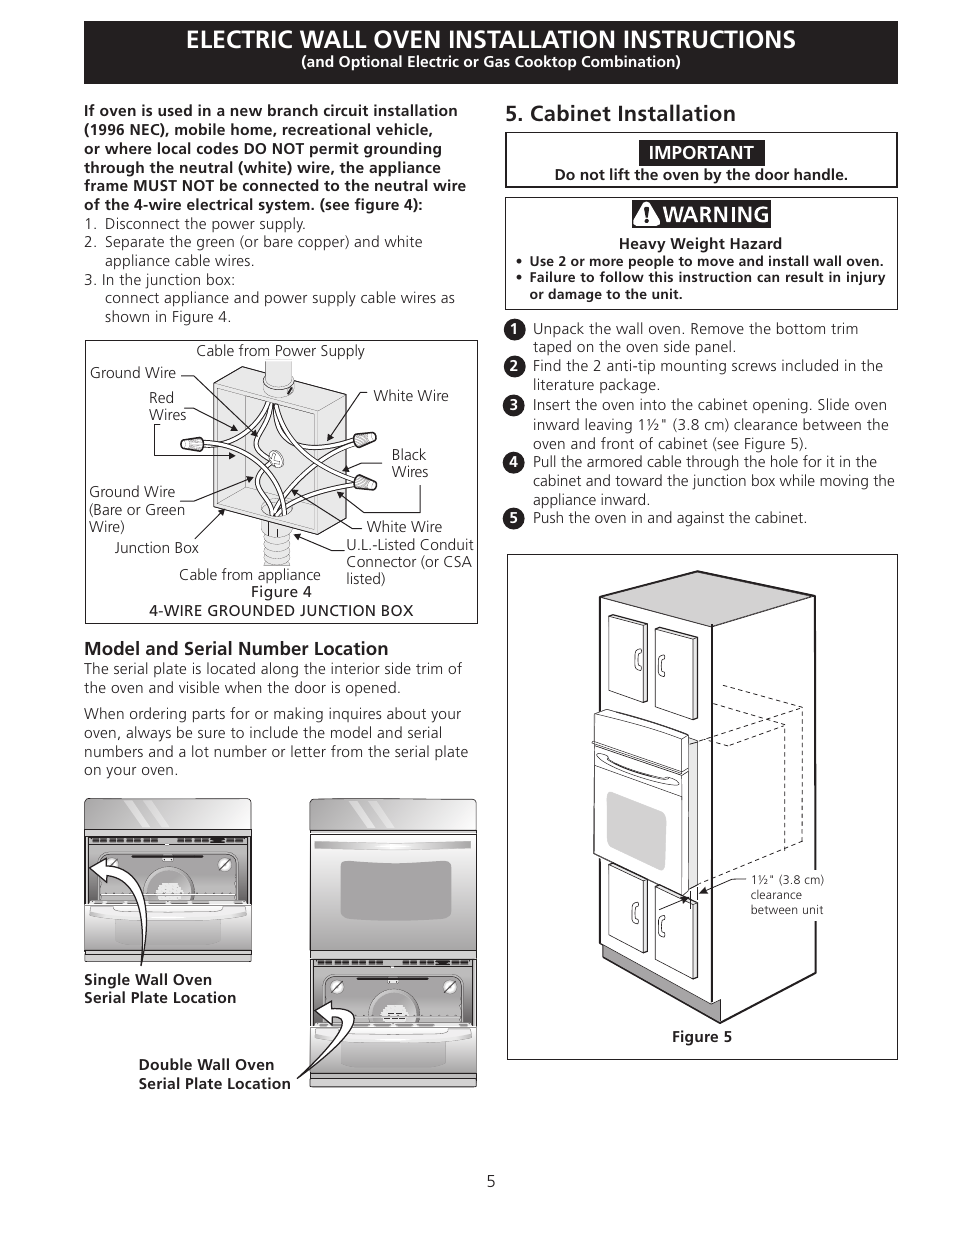 Electric wall oven installation instructions, Cabinet